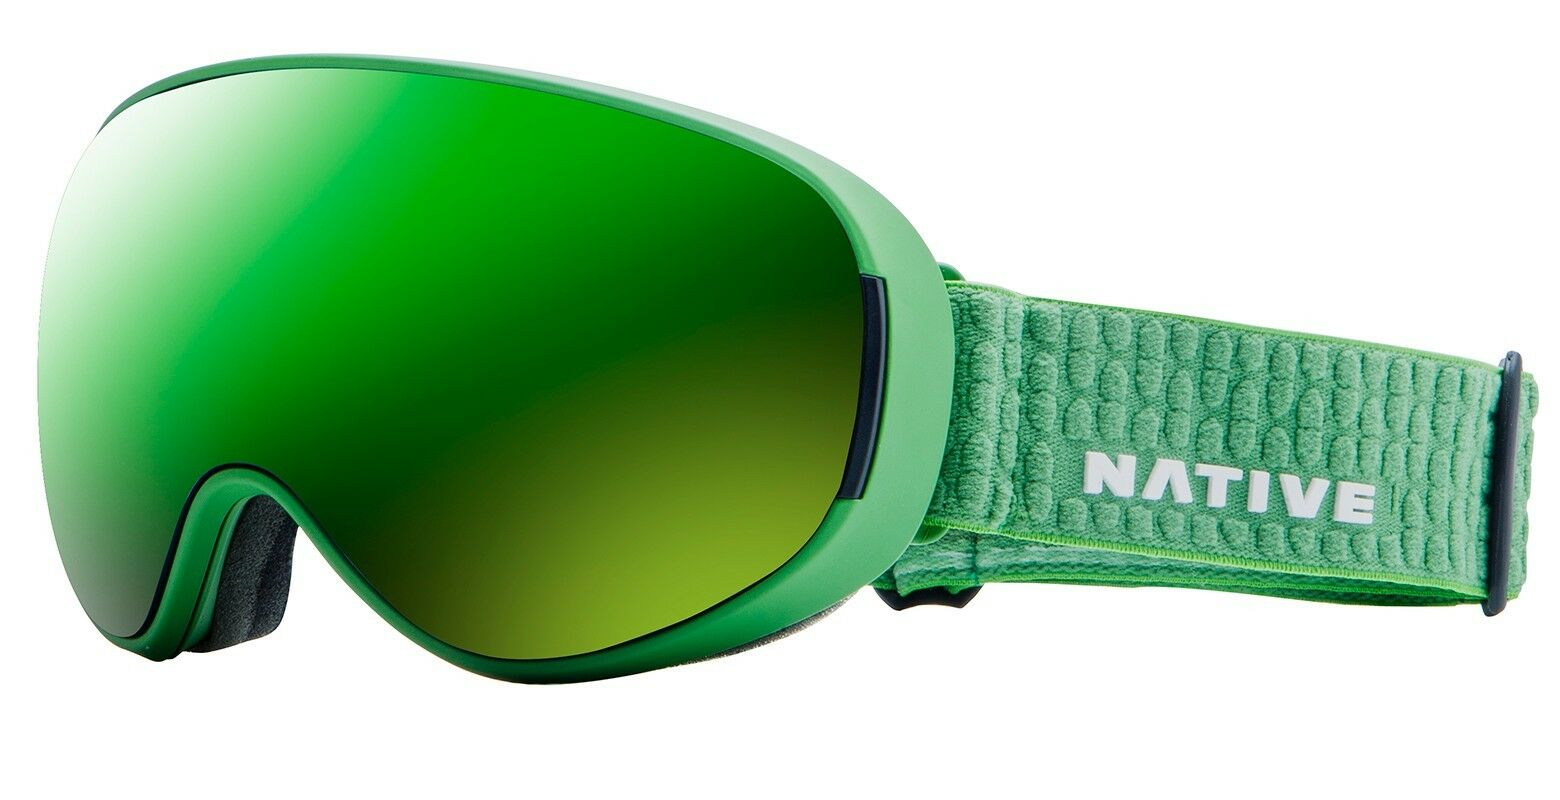 NEW  Native Eyewear Goggles DropZone - Medium Fit - Green Strap - Wide View Lens  no hesitation!buy now!